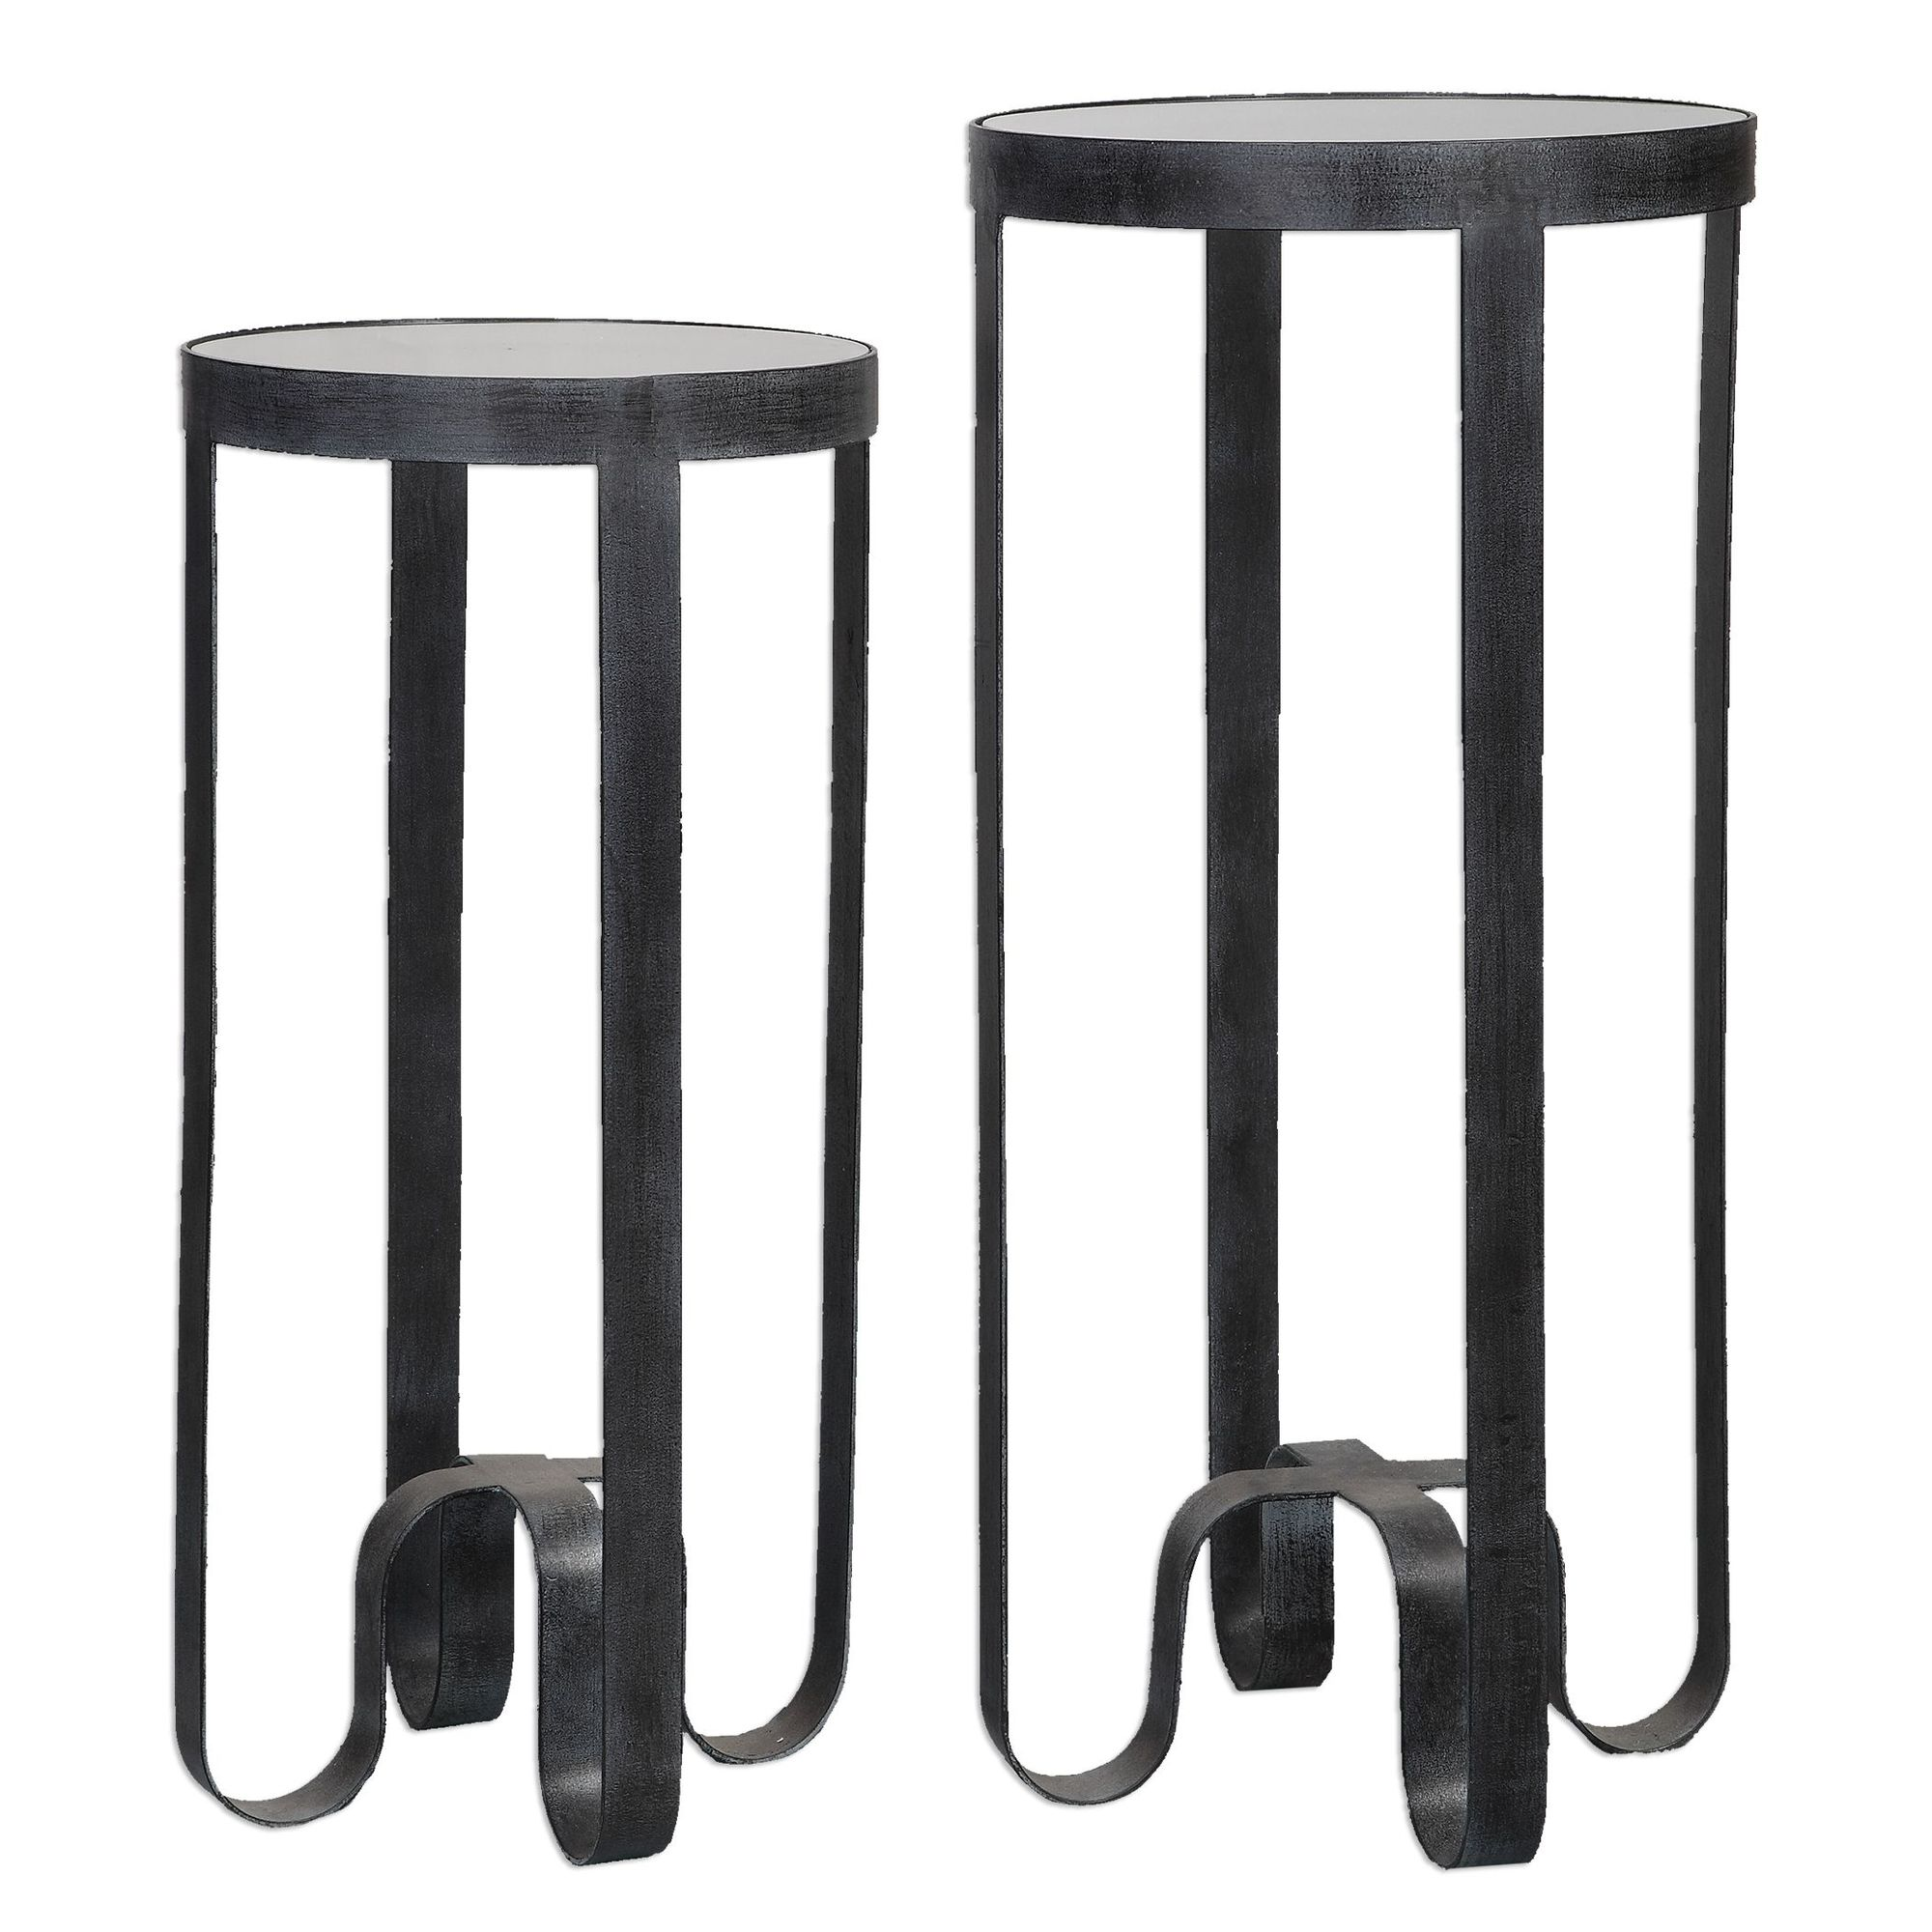 two piece round top accent tables espresso mathis brothers table outdoor patio lights modern night lamp jcpenney decorative pillows hairpin legs marble breakfast room decoration